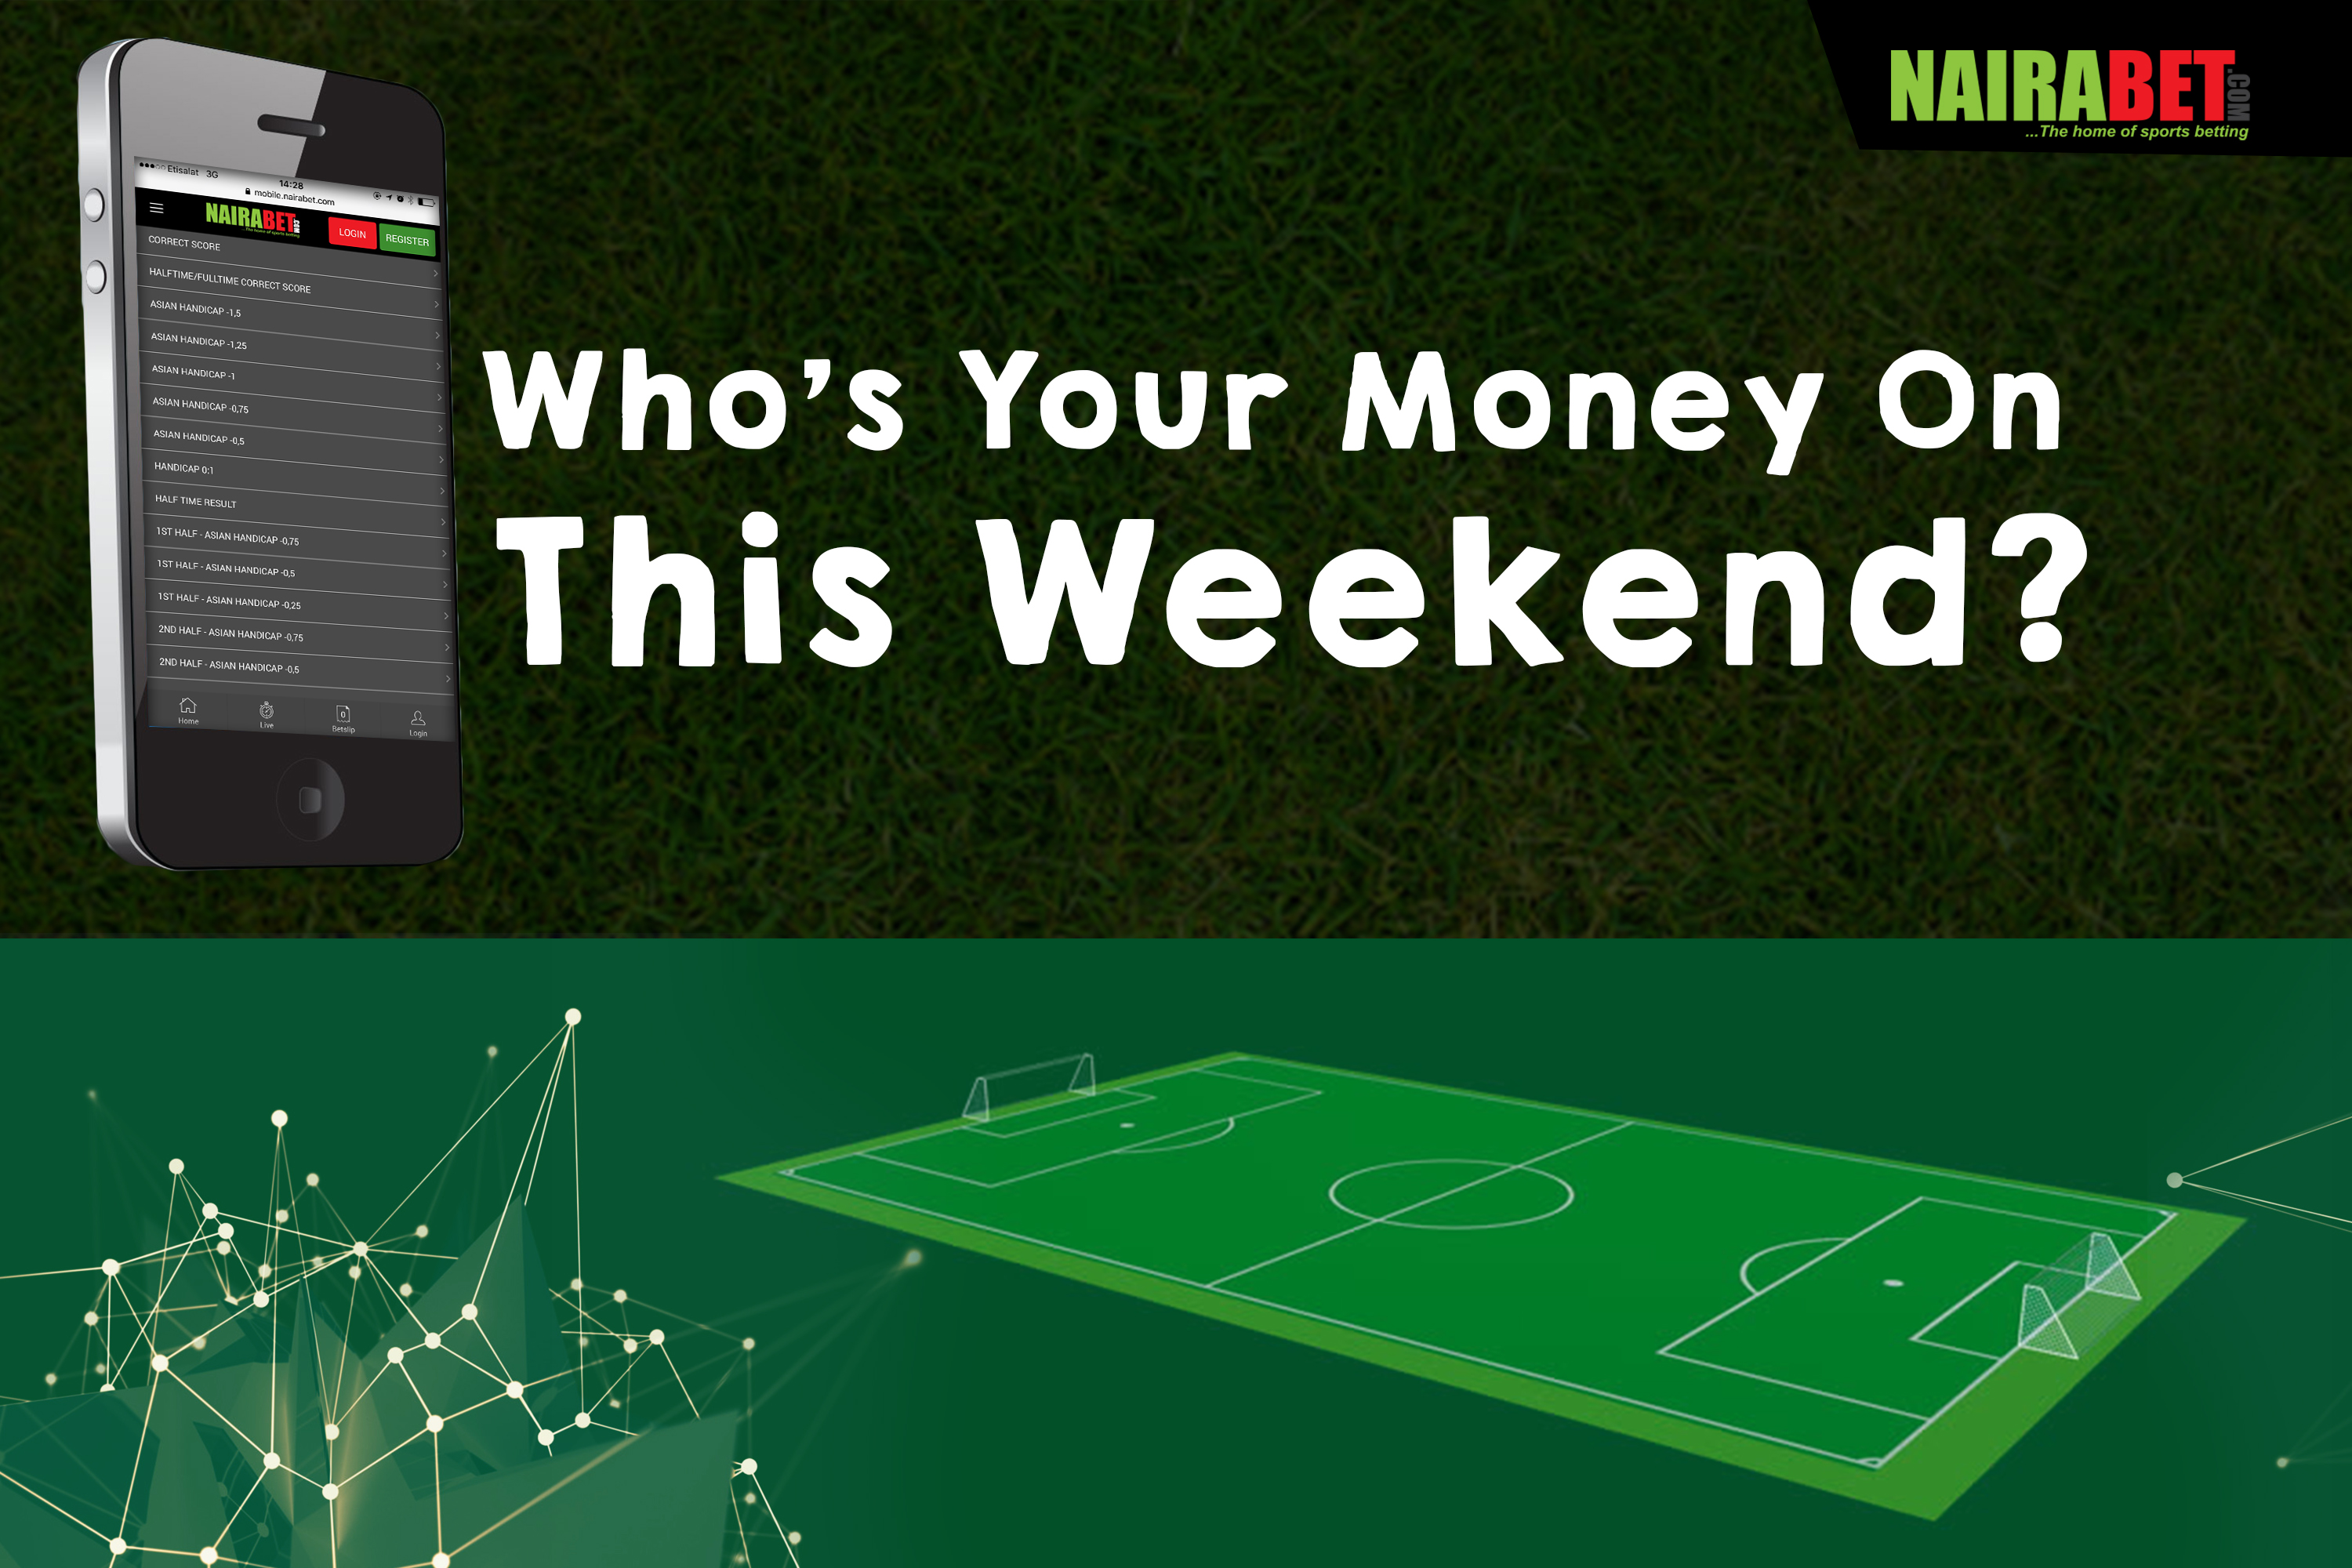 Who's Your Money On This Weekend